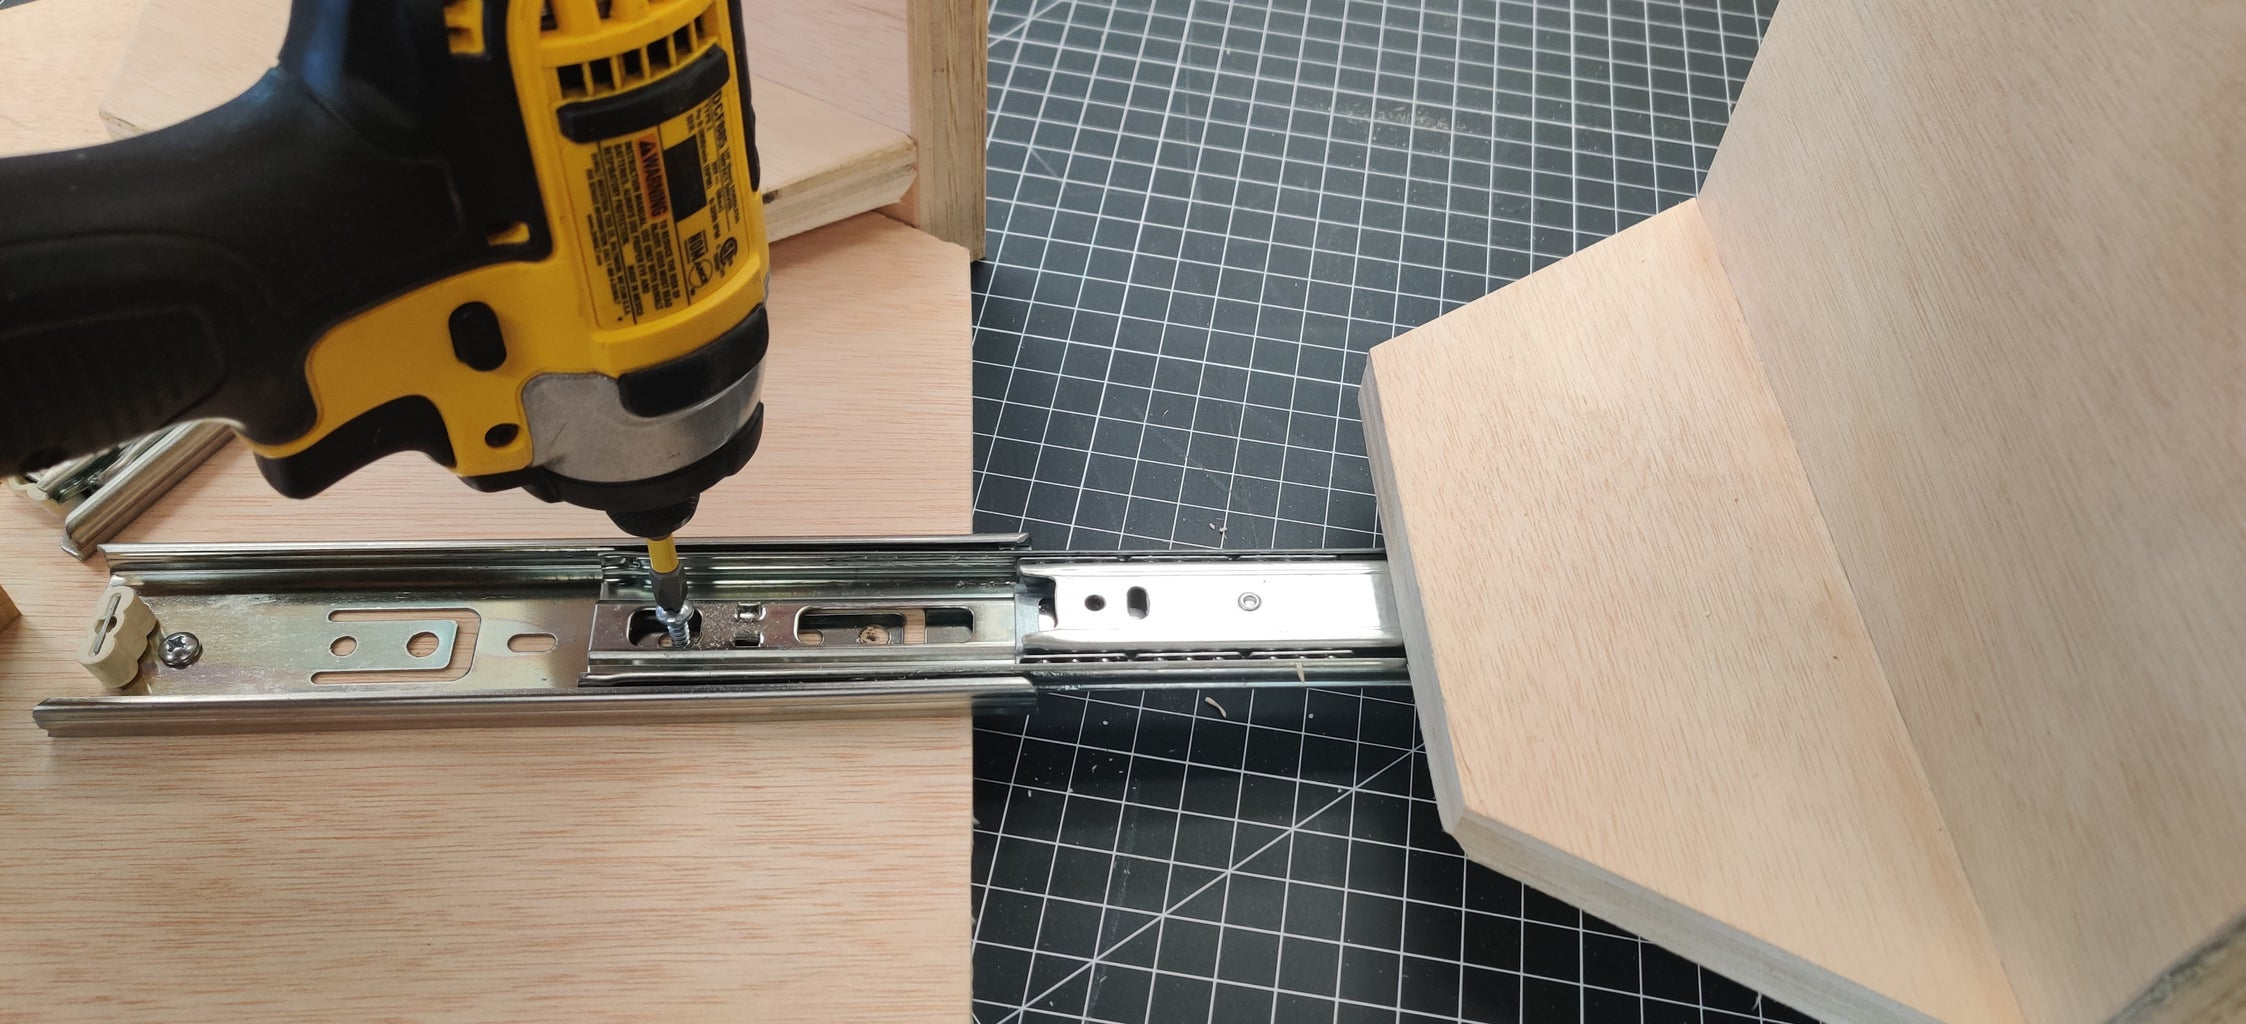 Attaching the Drawers to the Main Body